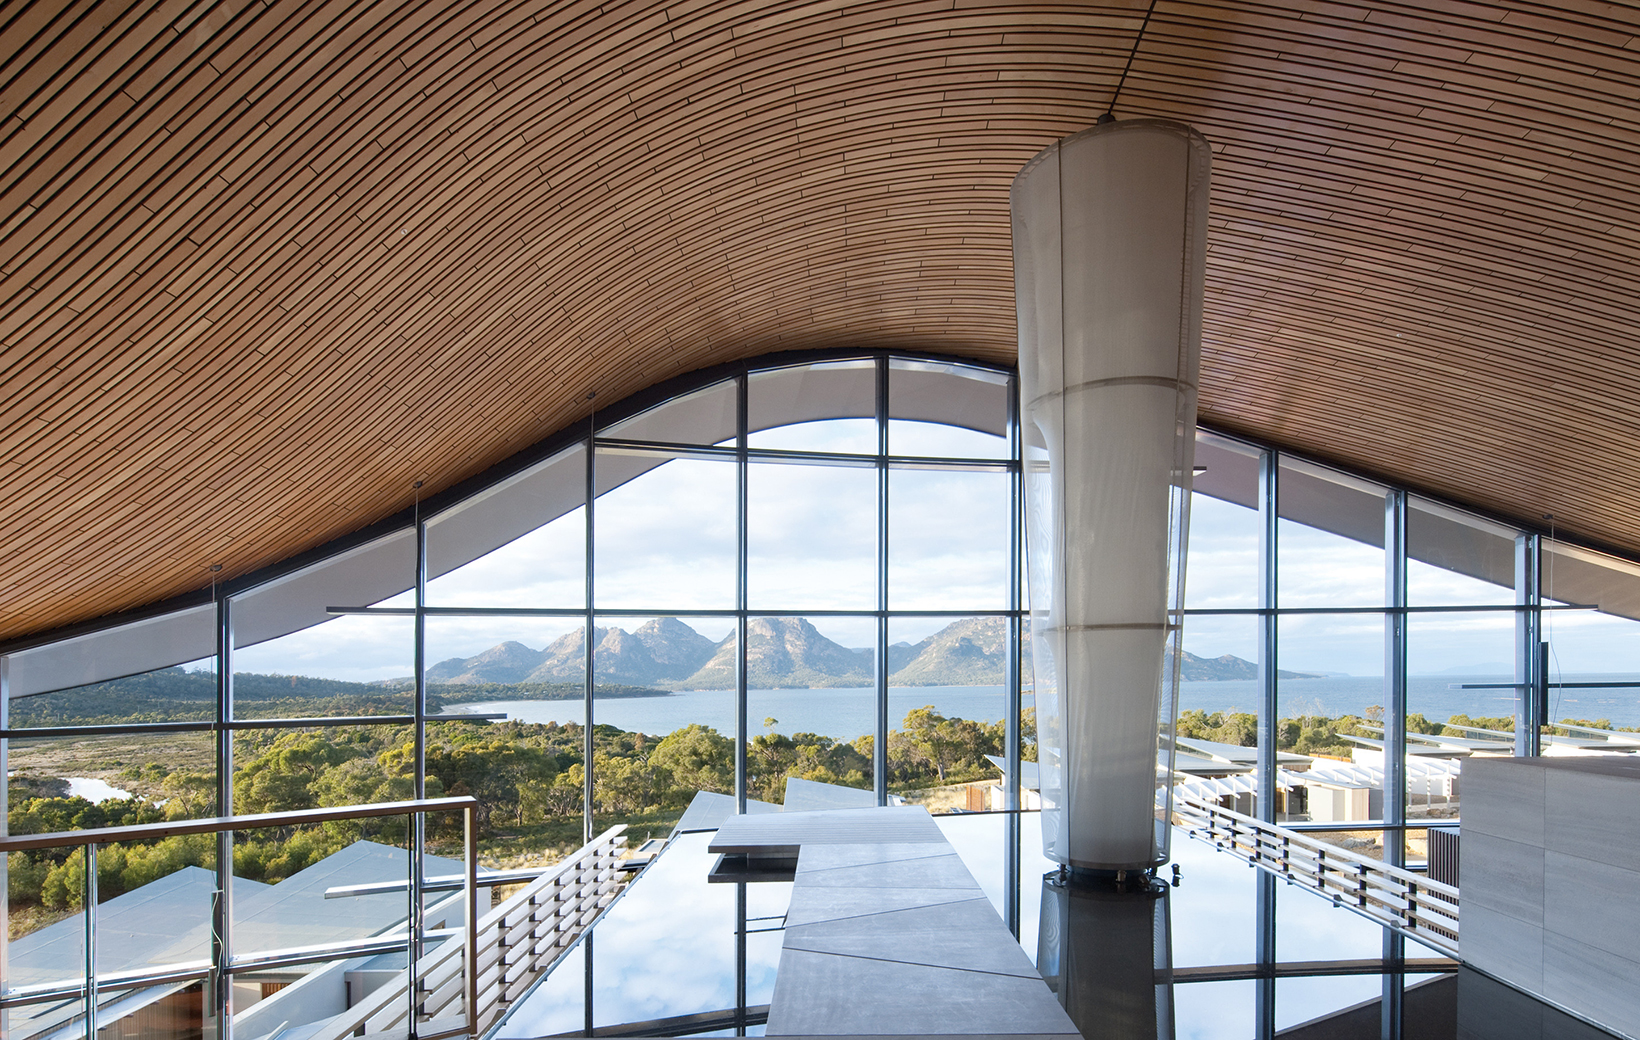 My Chameleon / Traveller. Wellness Retreats Saffire Freycinet